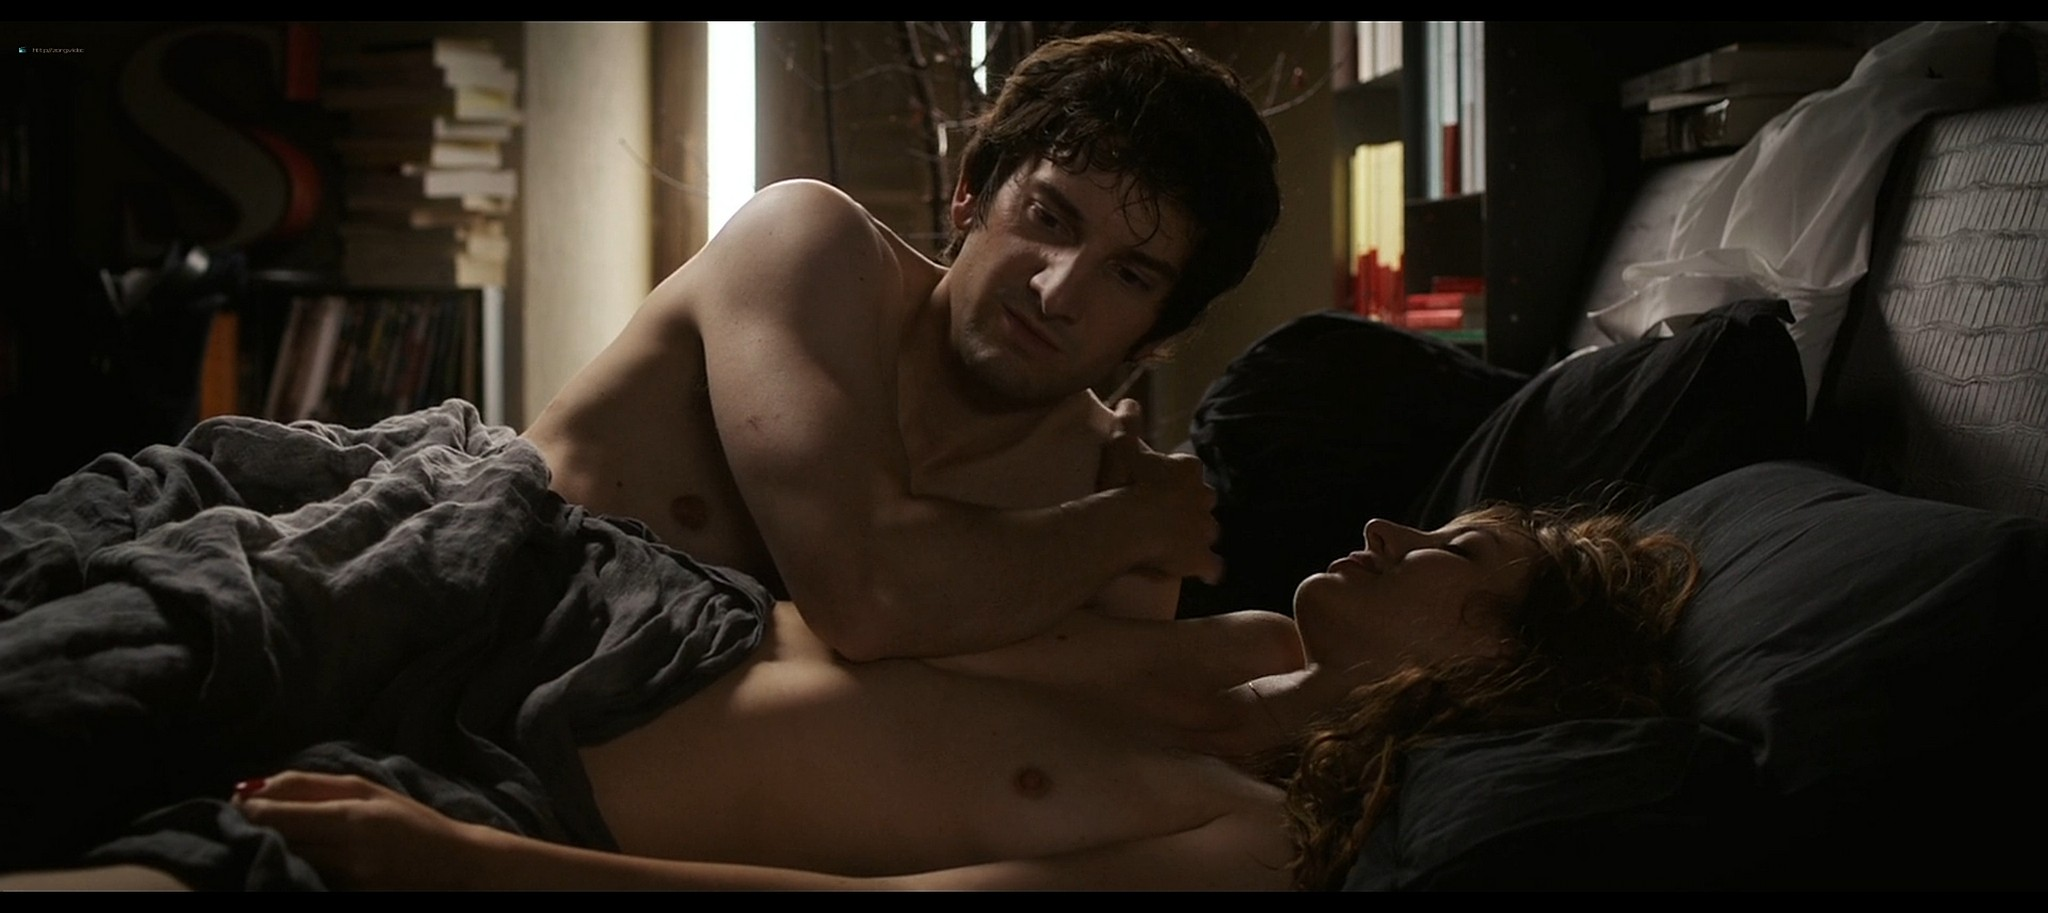 Louise Bourgoin nude and sex and Elisa Sednaoui nude LAmour Dure Trois Ans 2012 1080p BluRay 9